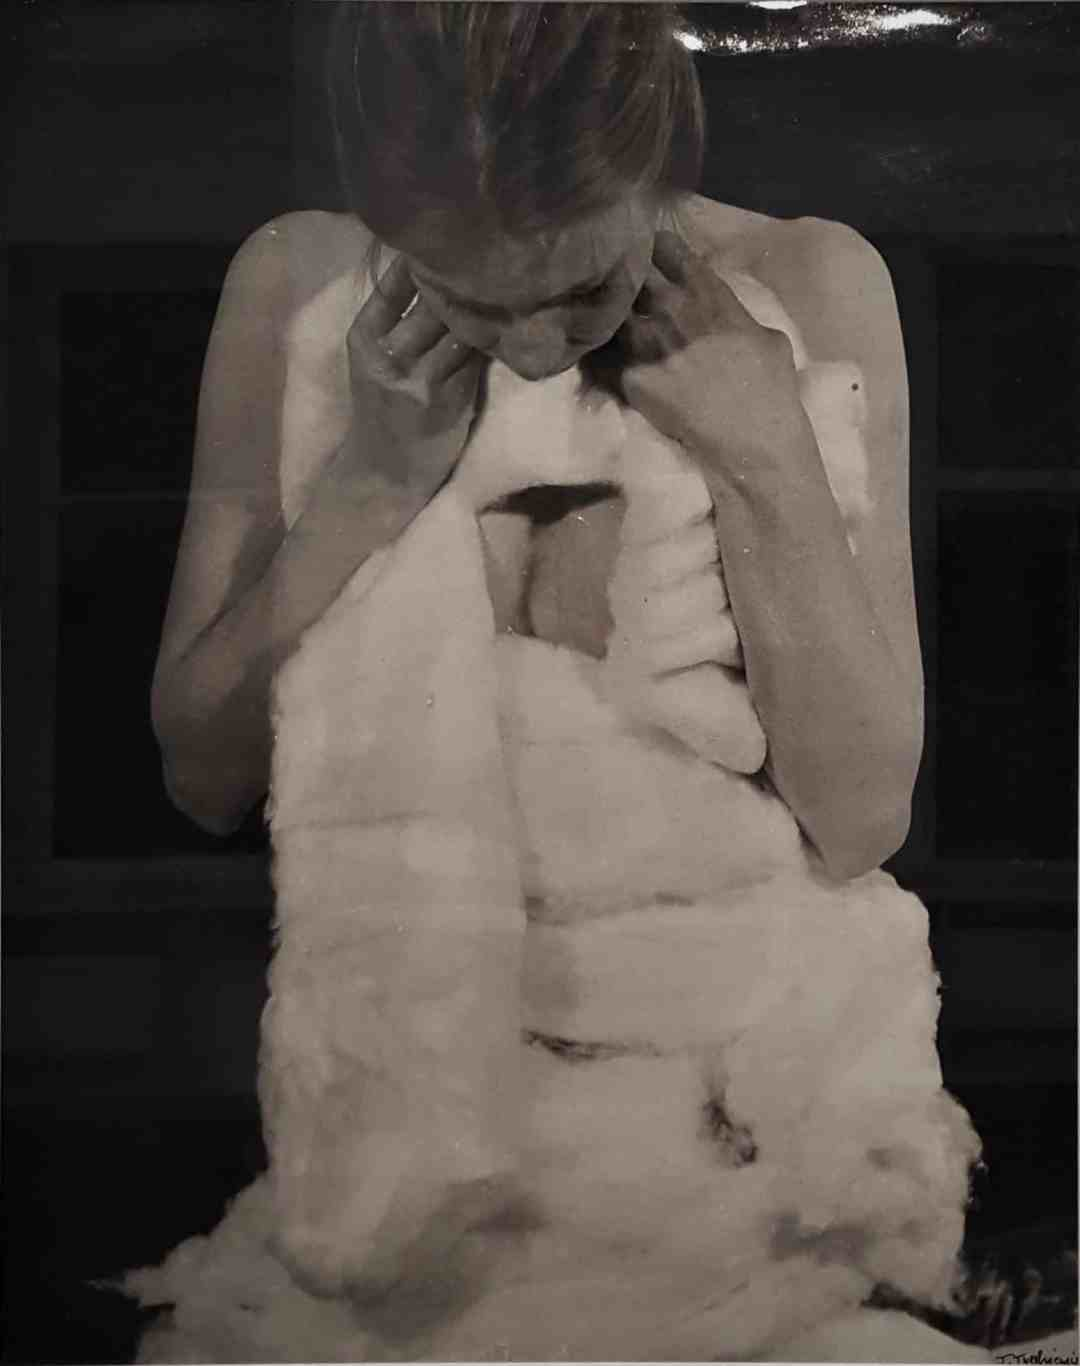 Teresa Tyszkiewicz, 'Cotton Wool', 1980, photography